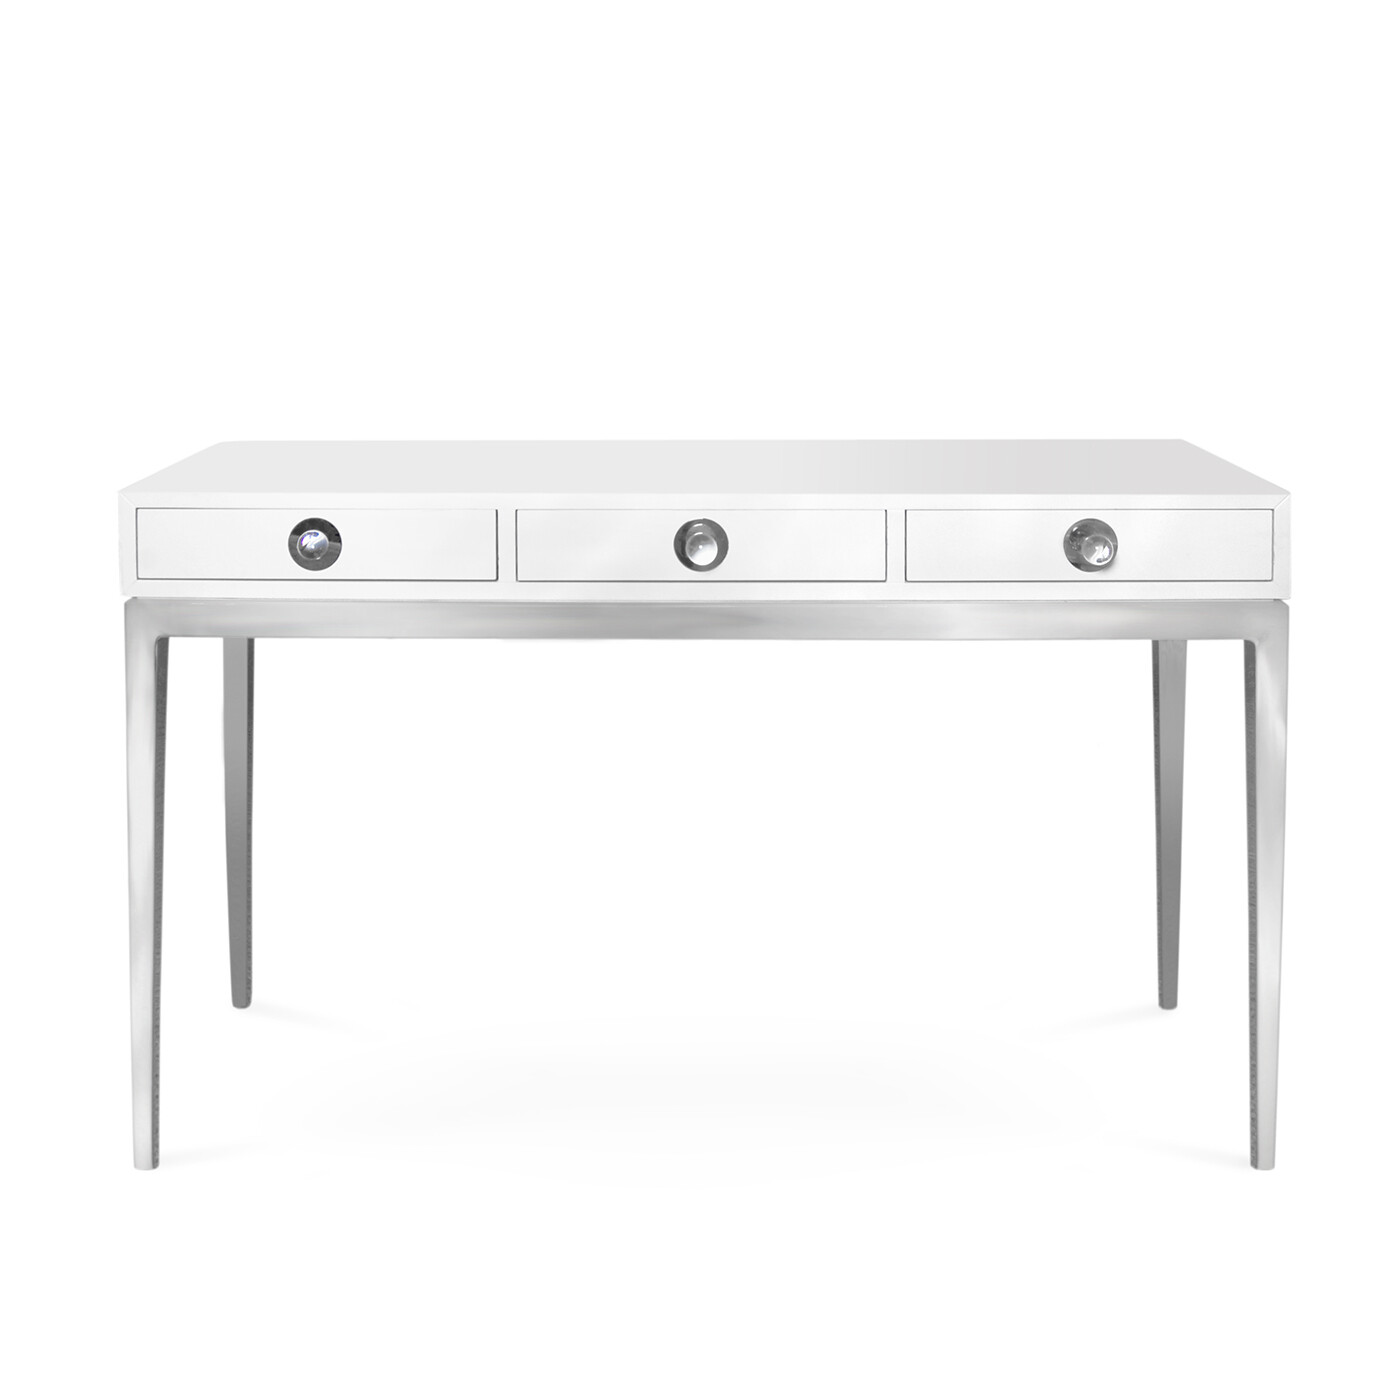 Channing 3 Drawer White and Nickel Console